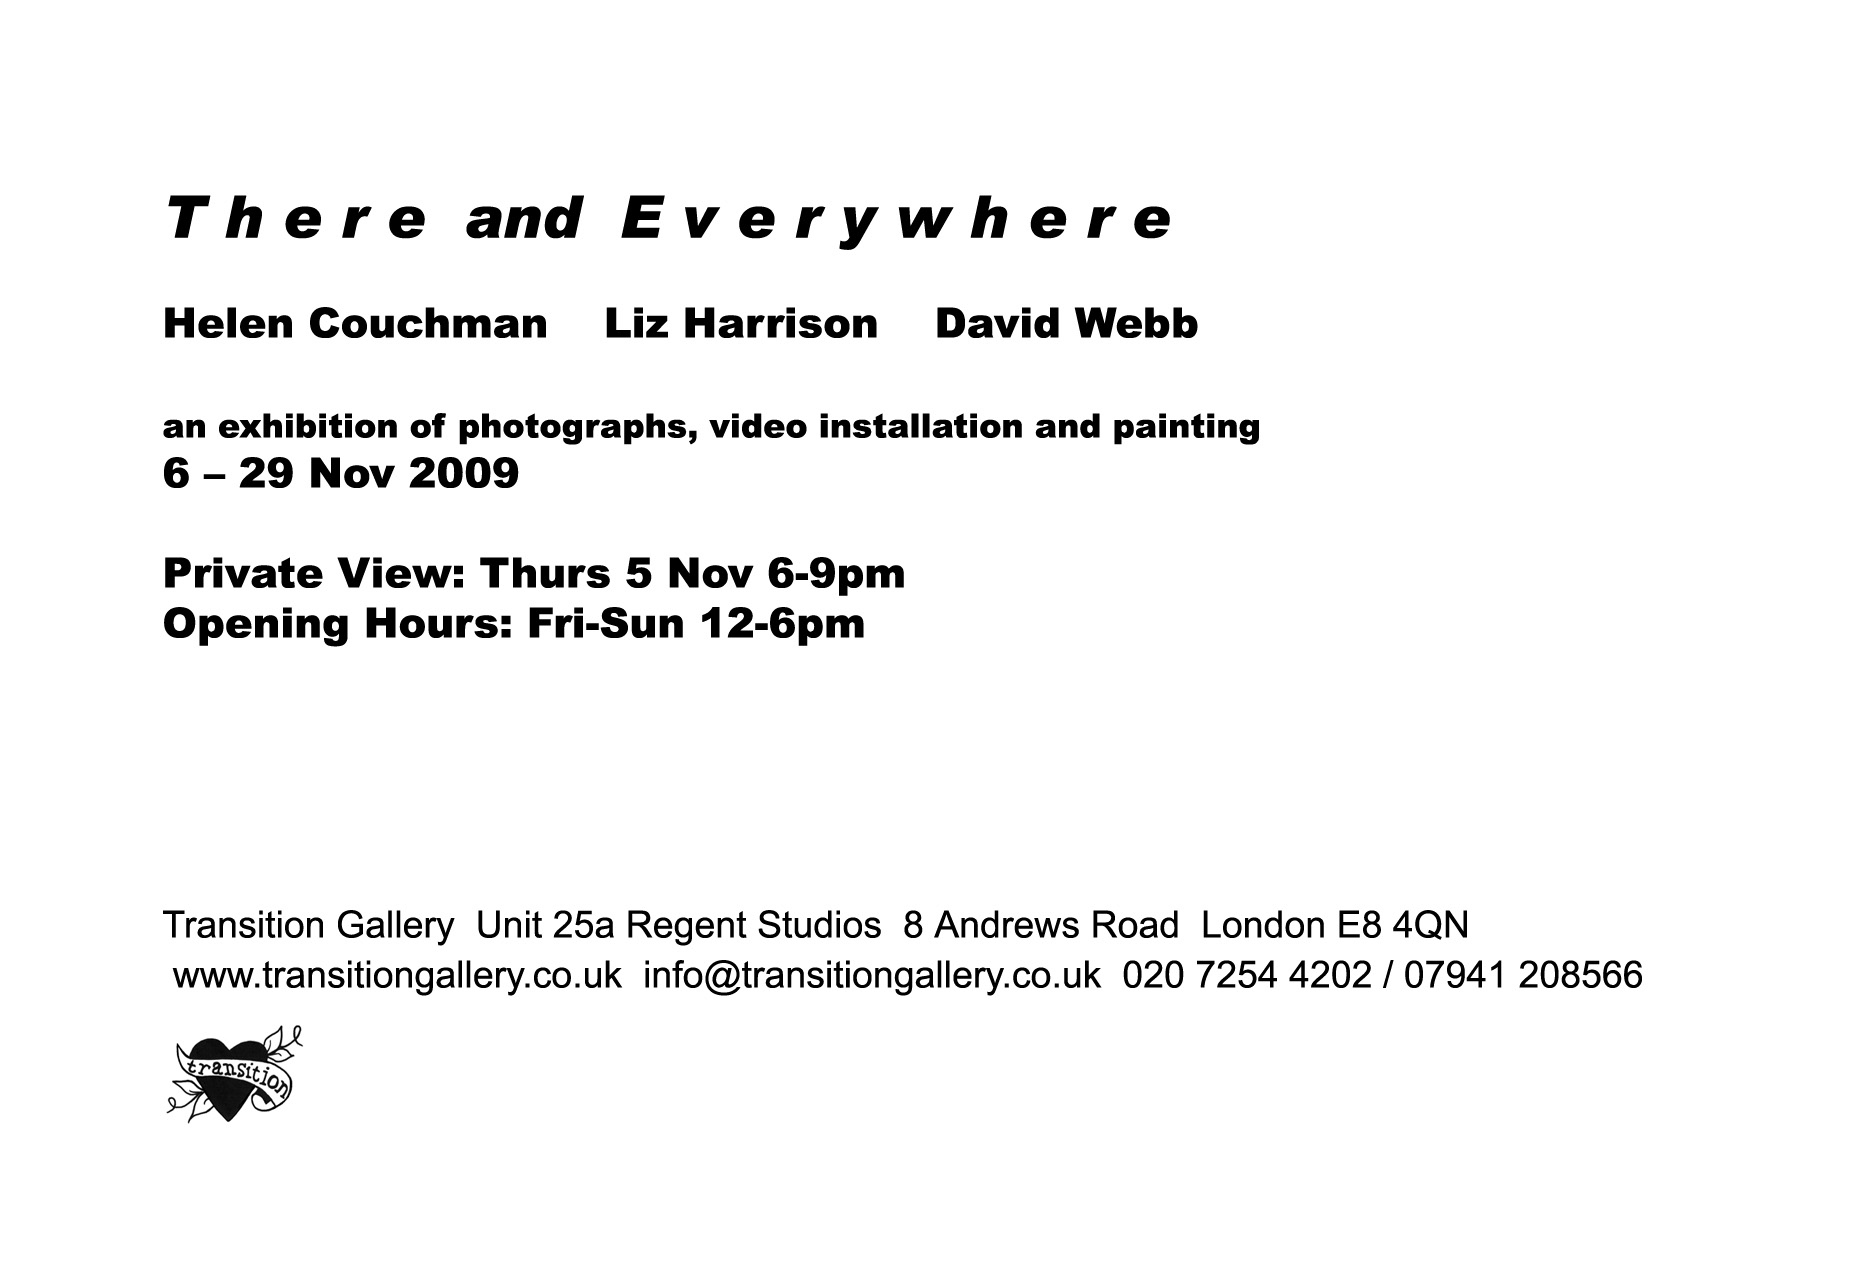 There and Everywhere - exhibition invite, Helen Couchman, David Webb, Liz Harrison at Transition Gallery text